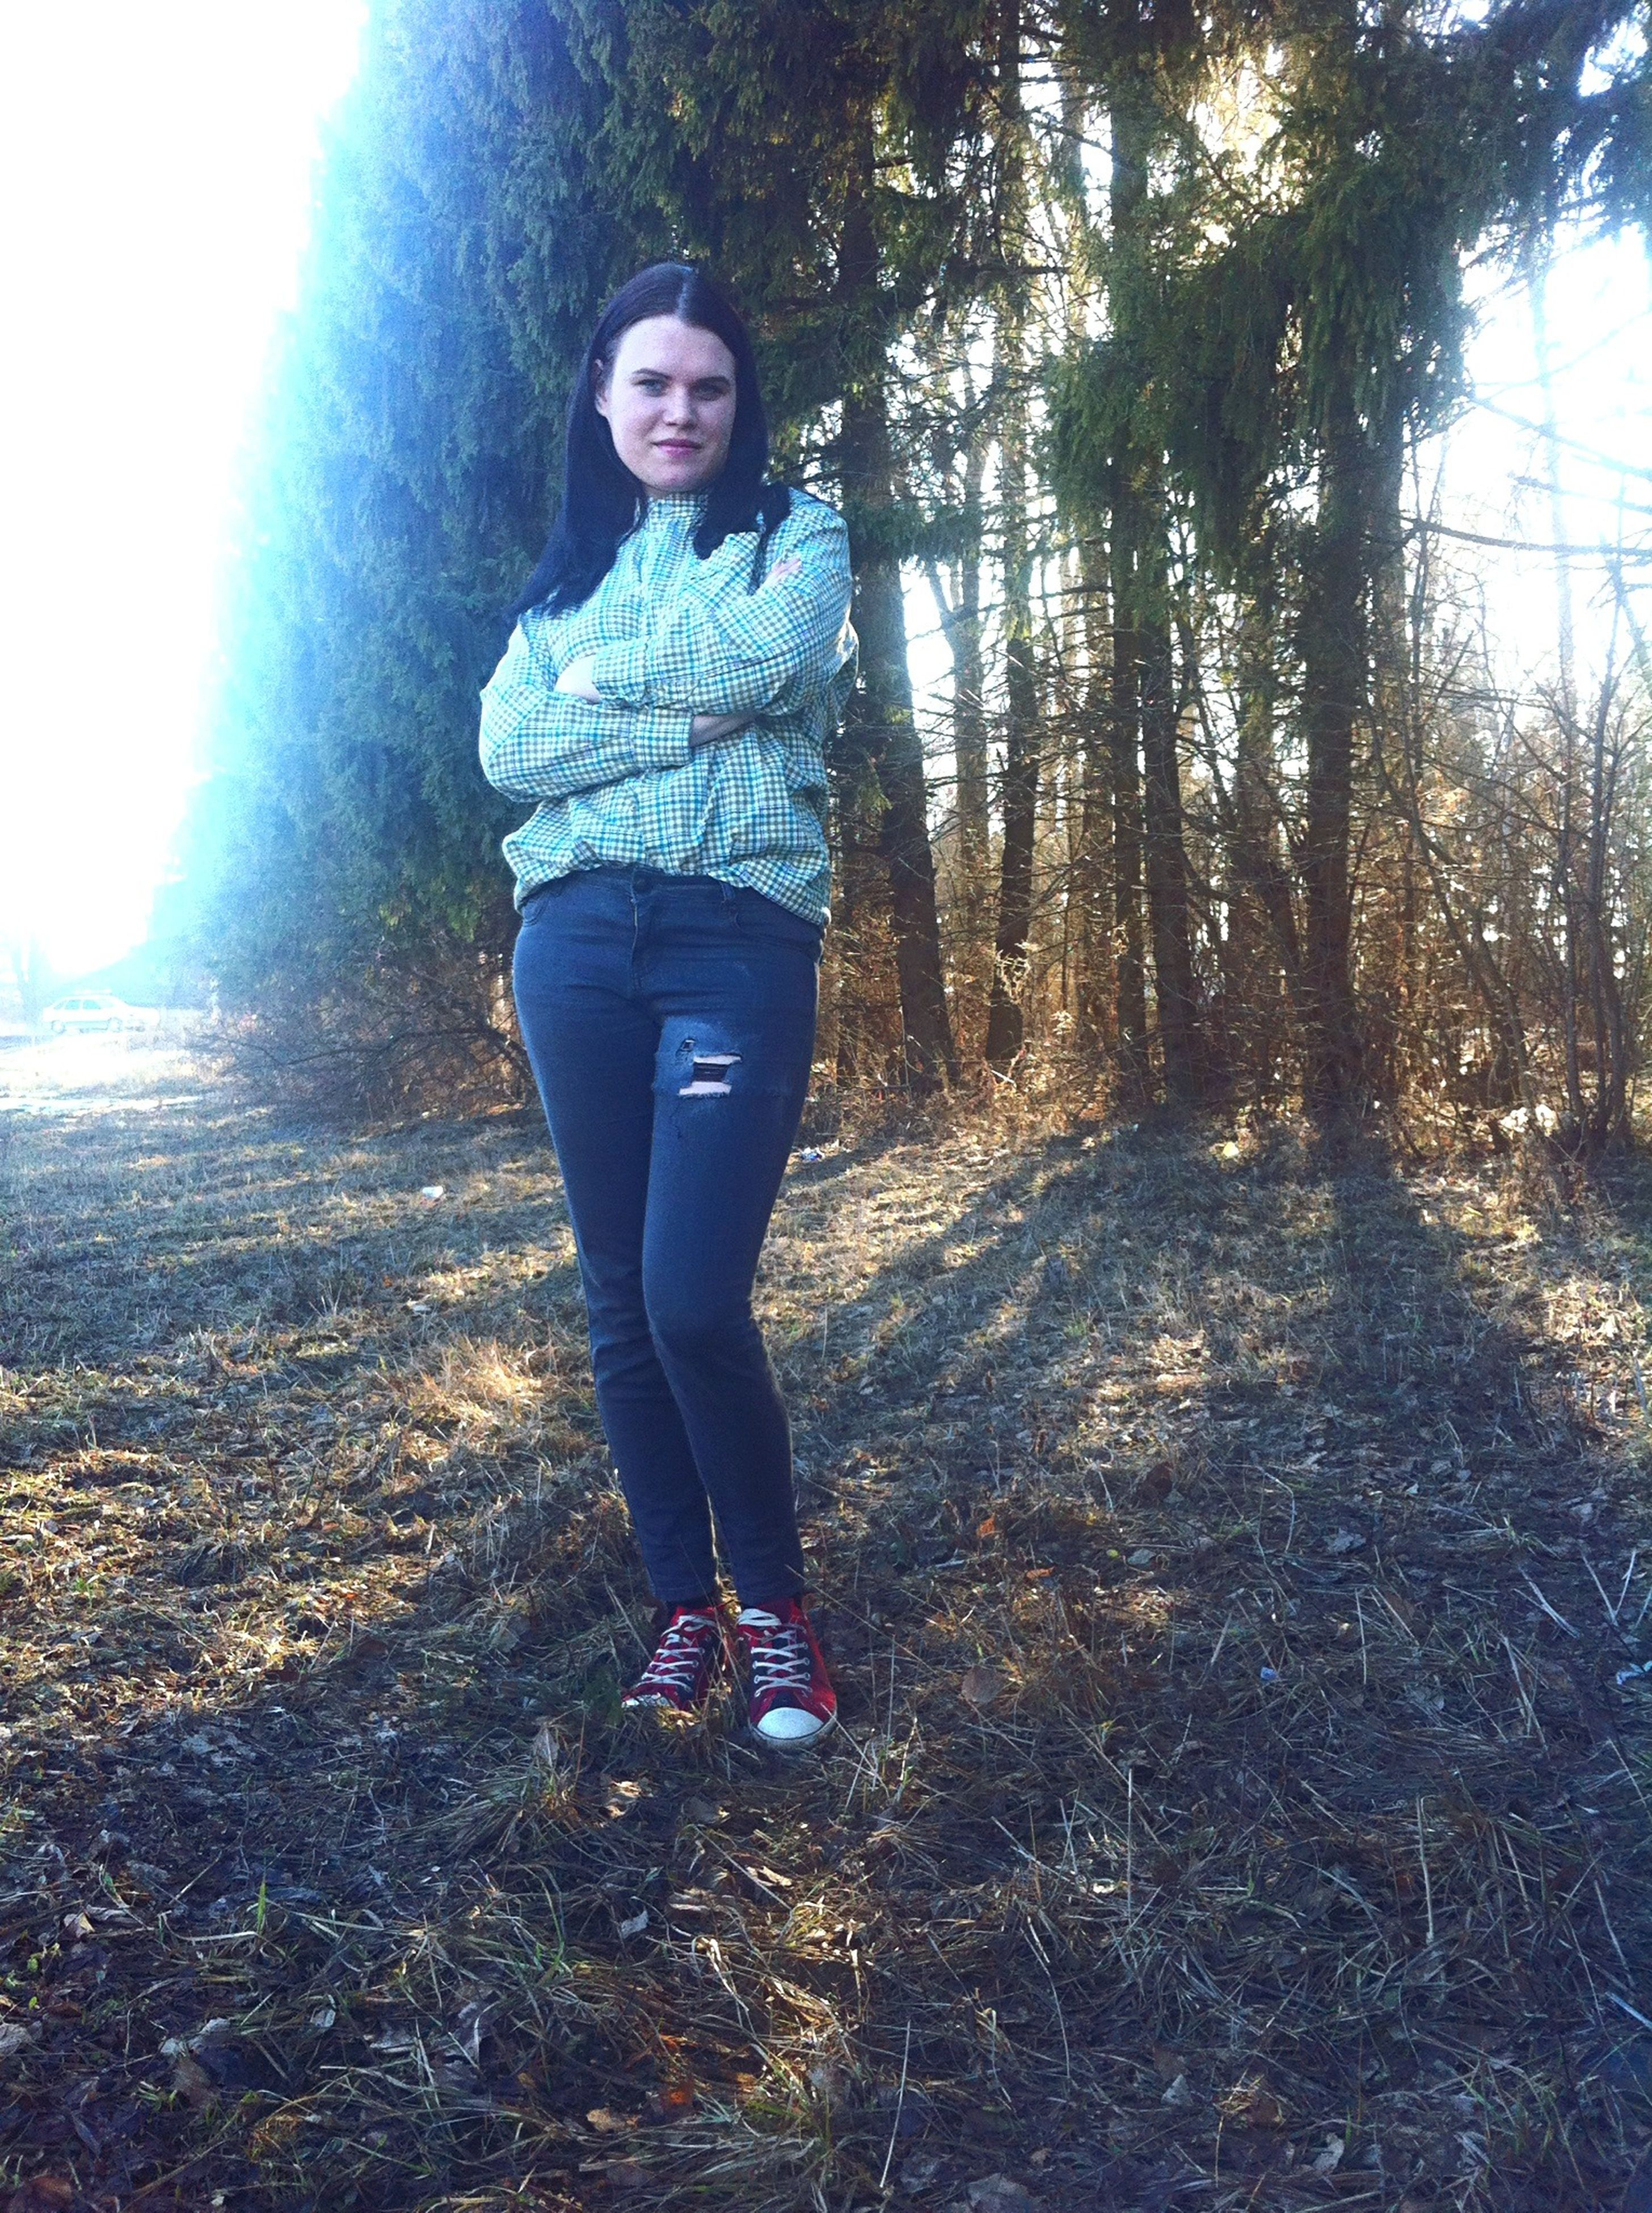 lifestyles, casual clothing, young adult, full length, leisure activity, person, standing, front view, looking at camera, portrait, young women, tree, nature, forest, smiling, warm clothing, three quarter length, day